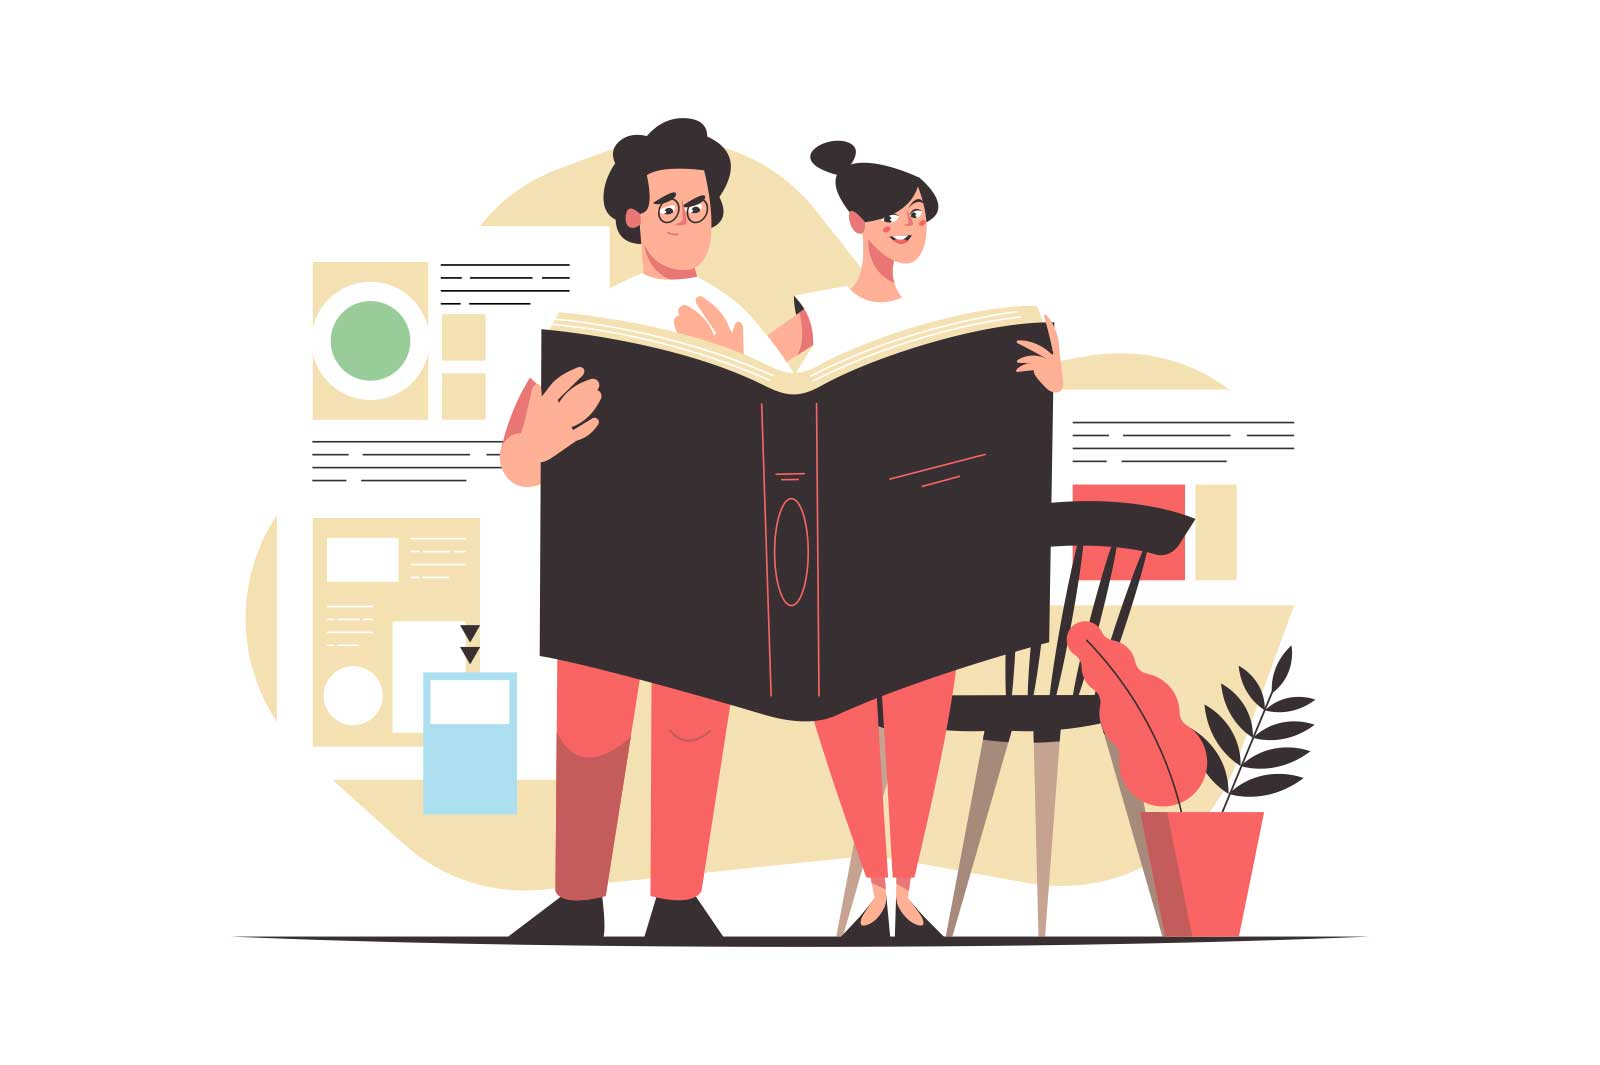 Man and woman reading together vector illustration. Young couple holding big book flat style. Love, couple, education, knowledge concept